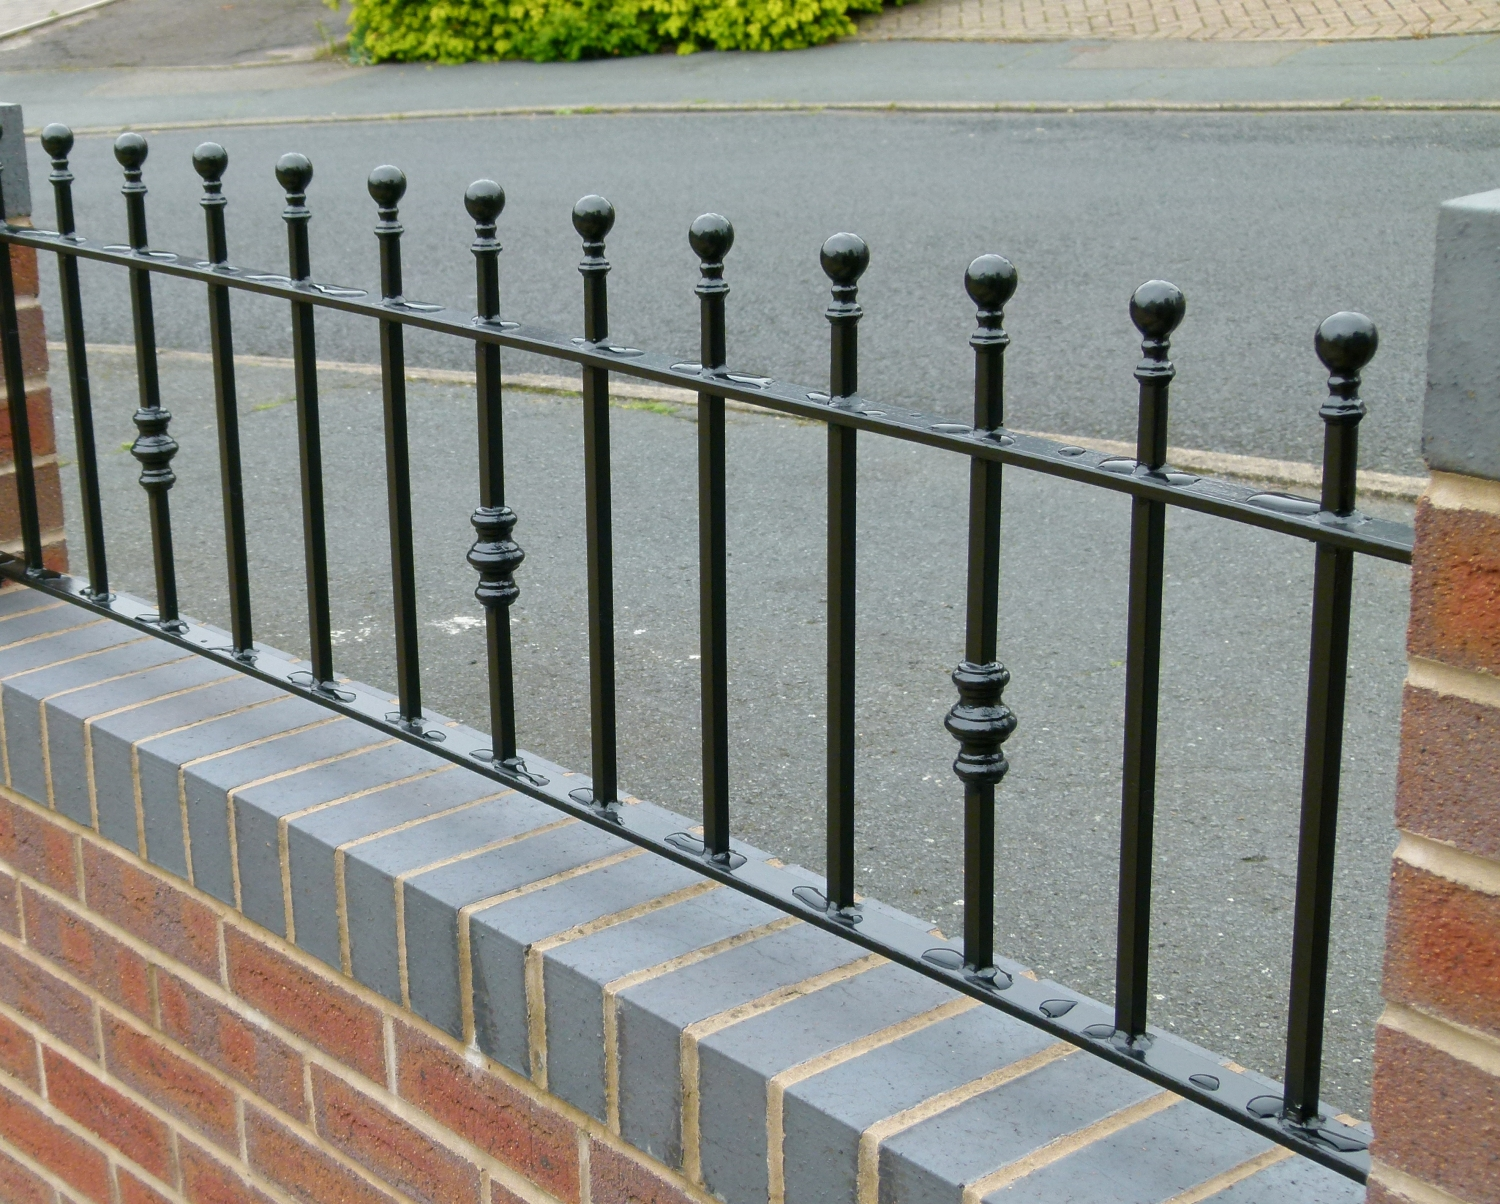 Domestic metal railings wrights fencing and landscaping